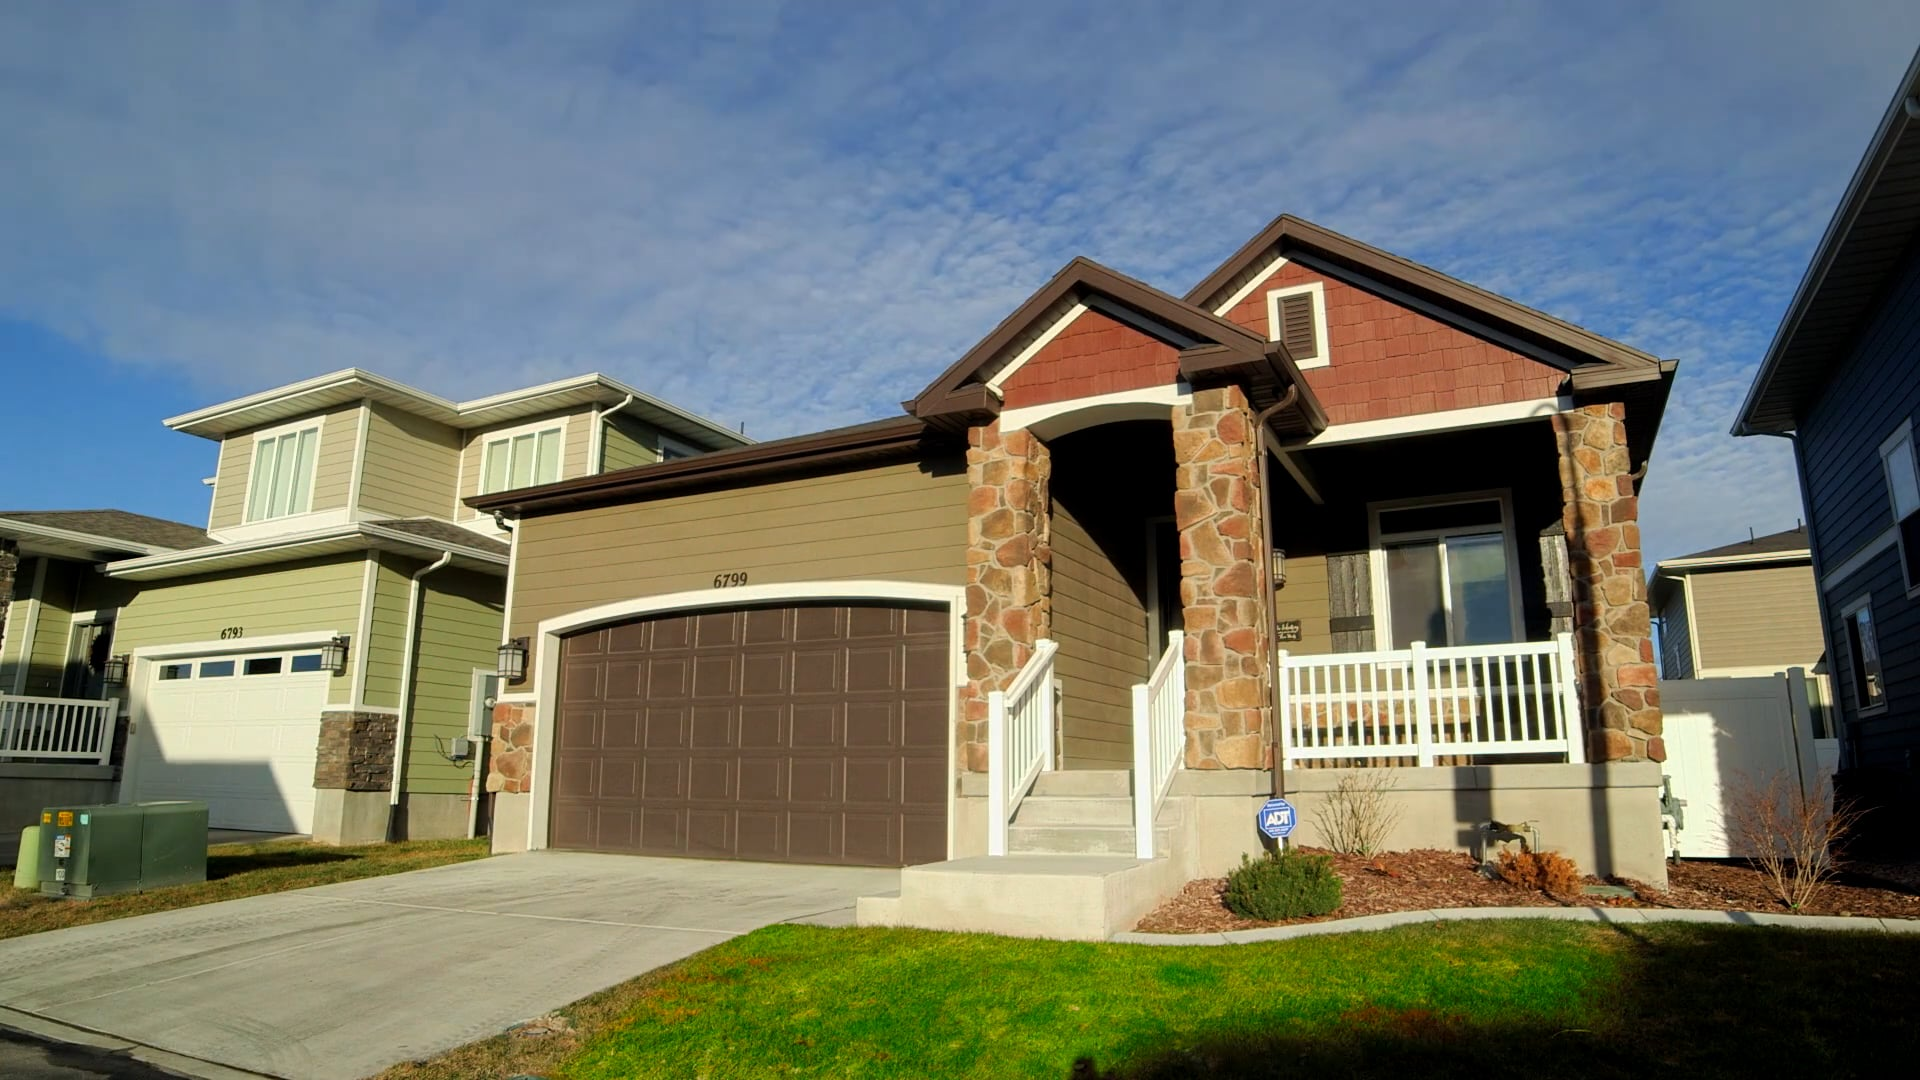 Middle 3 Bedroom home with an amazing exercise room.